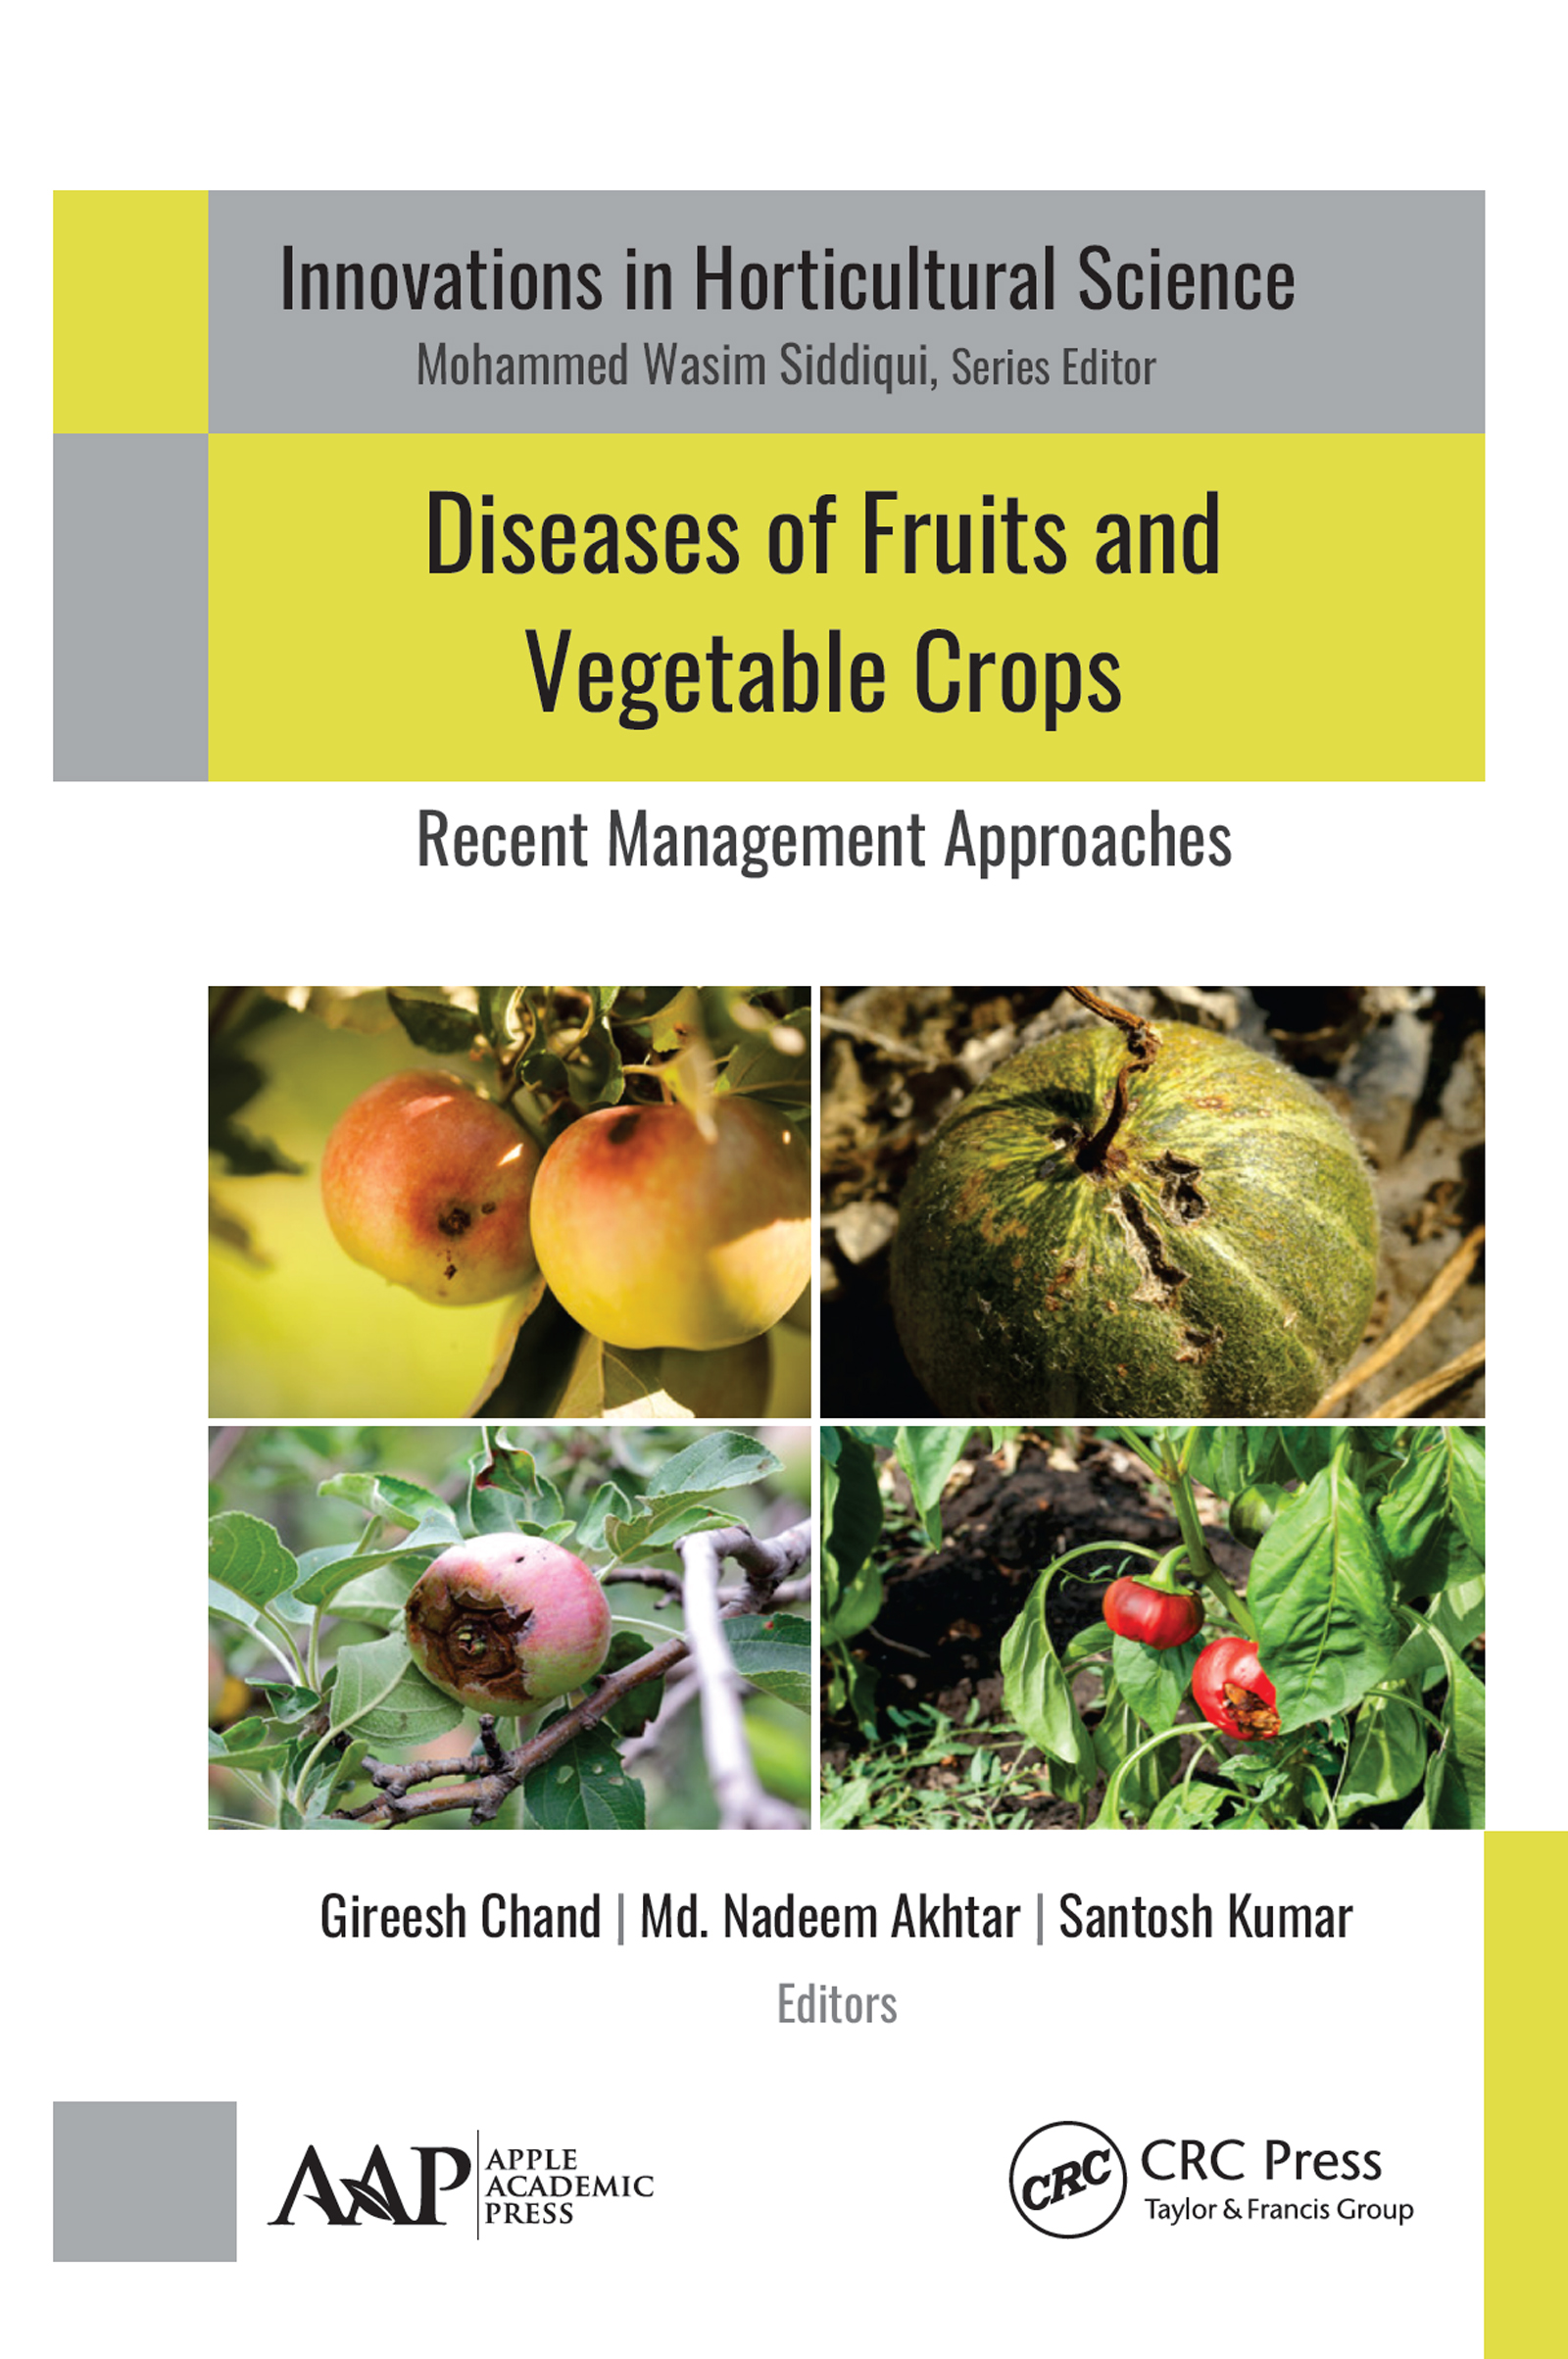 Diseases of Cucurbits and Their Management: Integrated Approaches